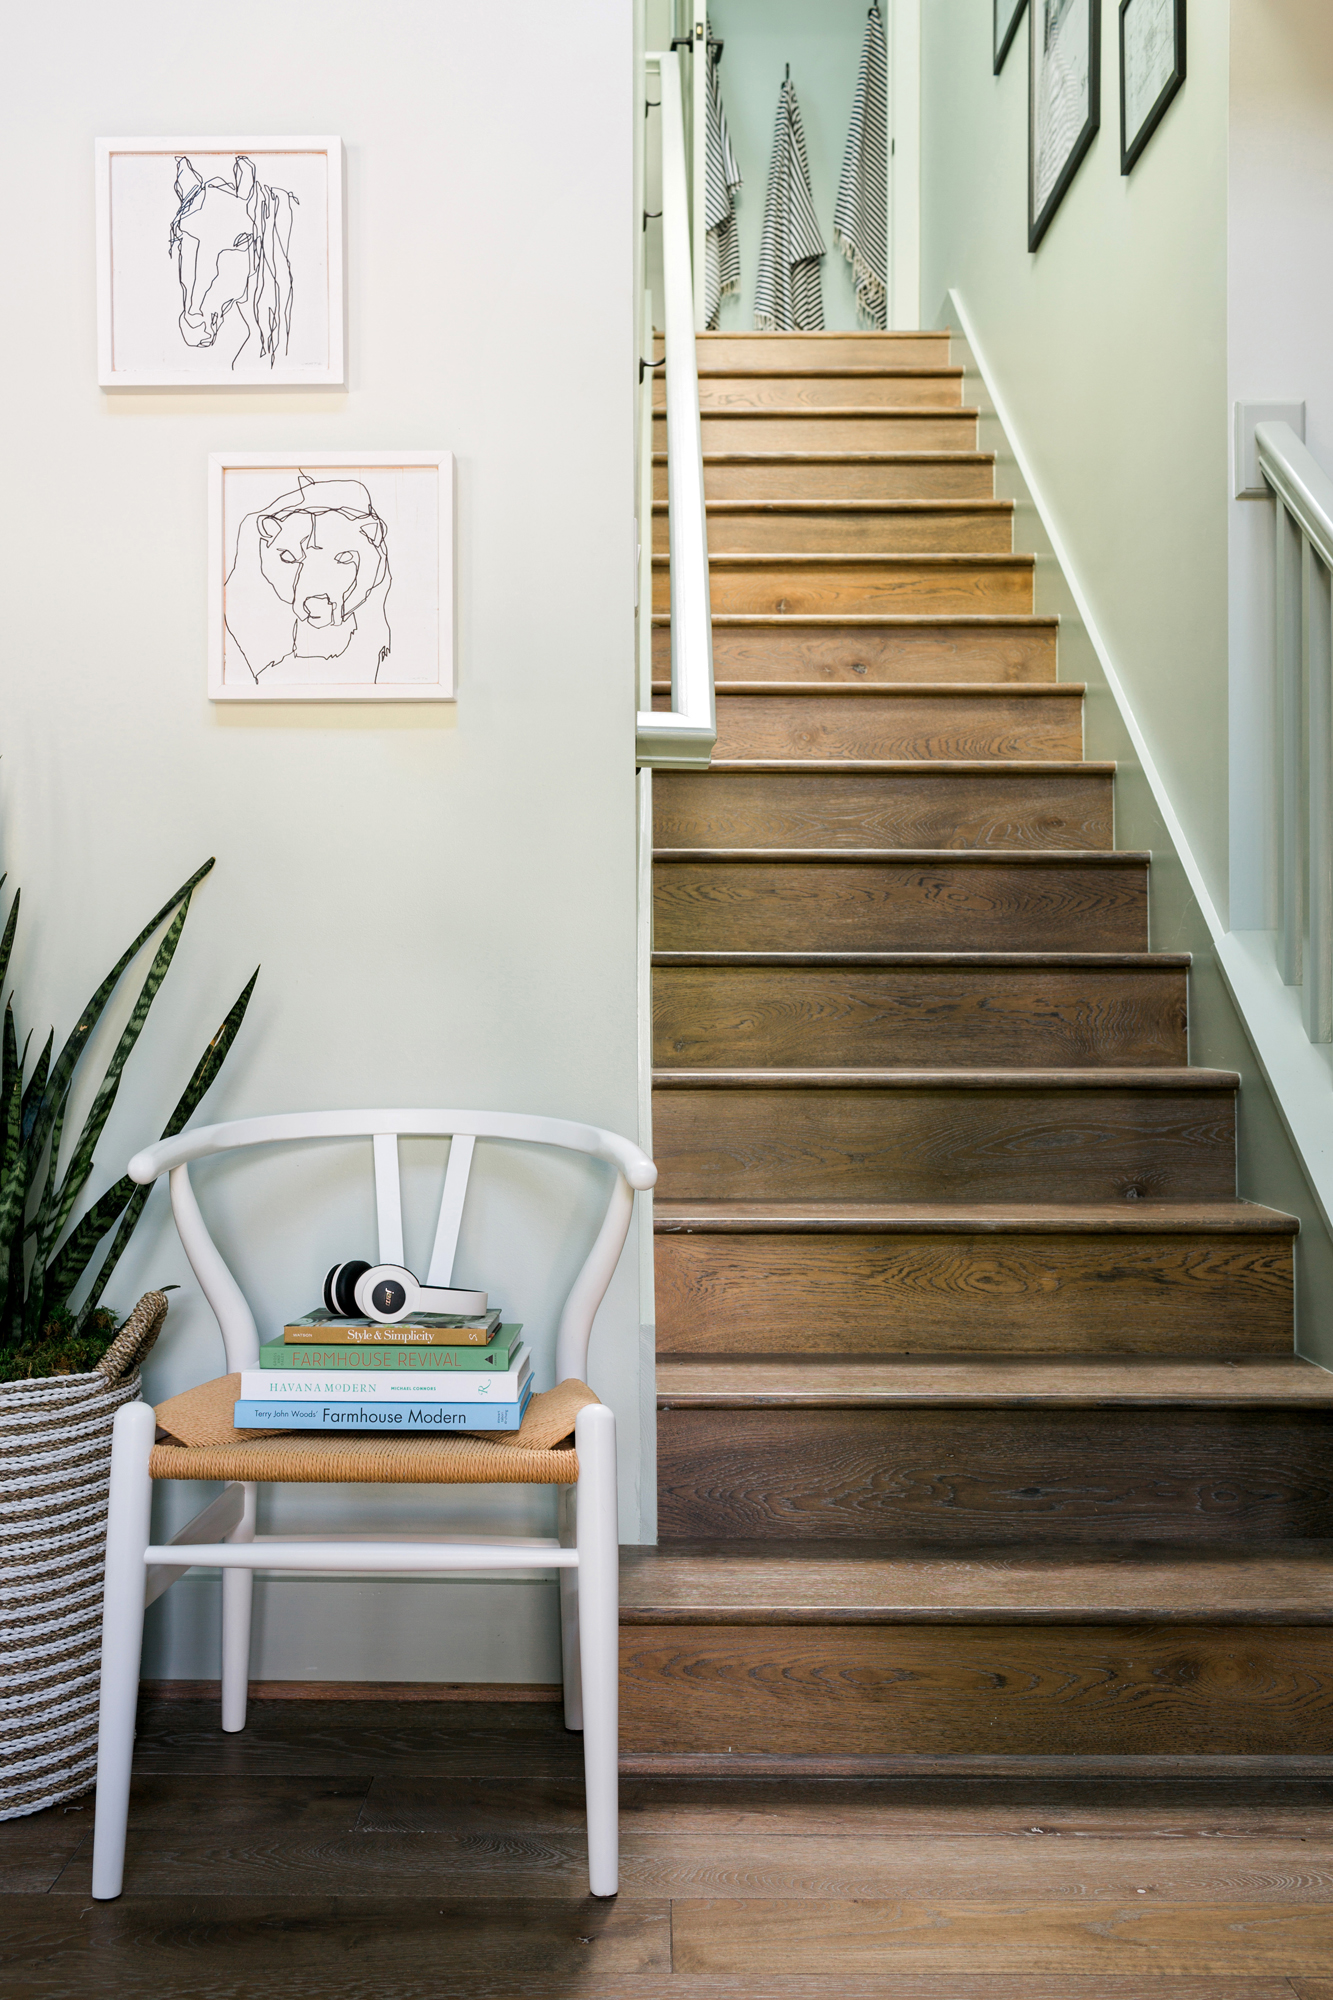 Directly across from the front entry, the stairwell sets the tone for the entire home. With a pale neutral palette, light oak floors and understated artwork, the mood is bright and inviting.